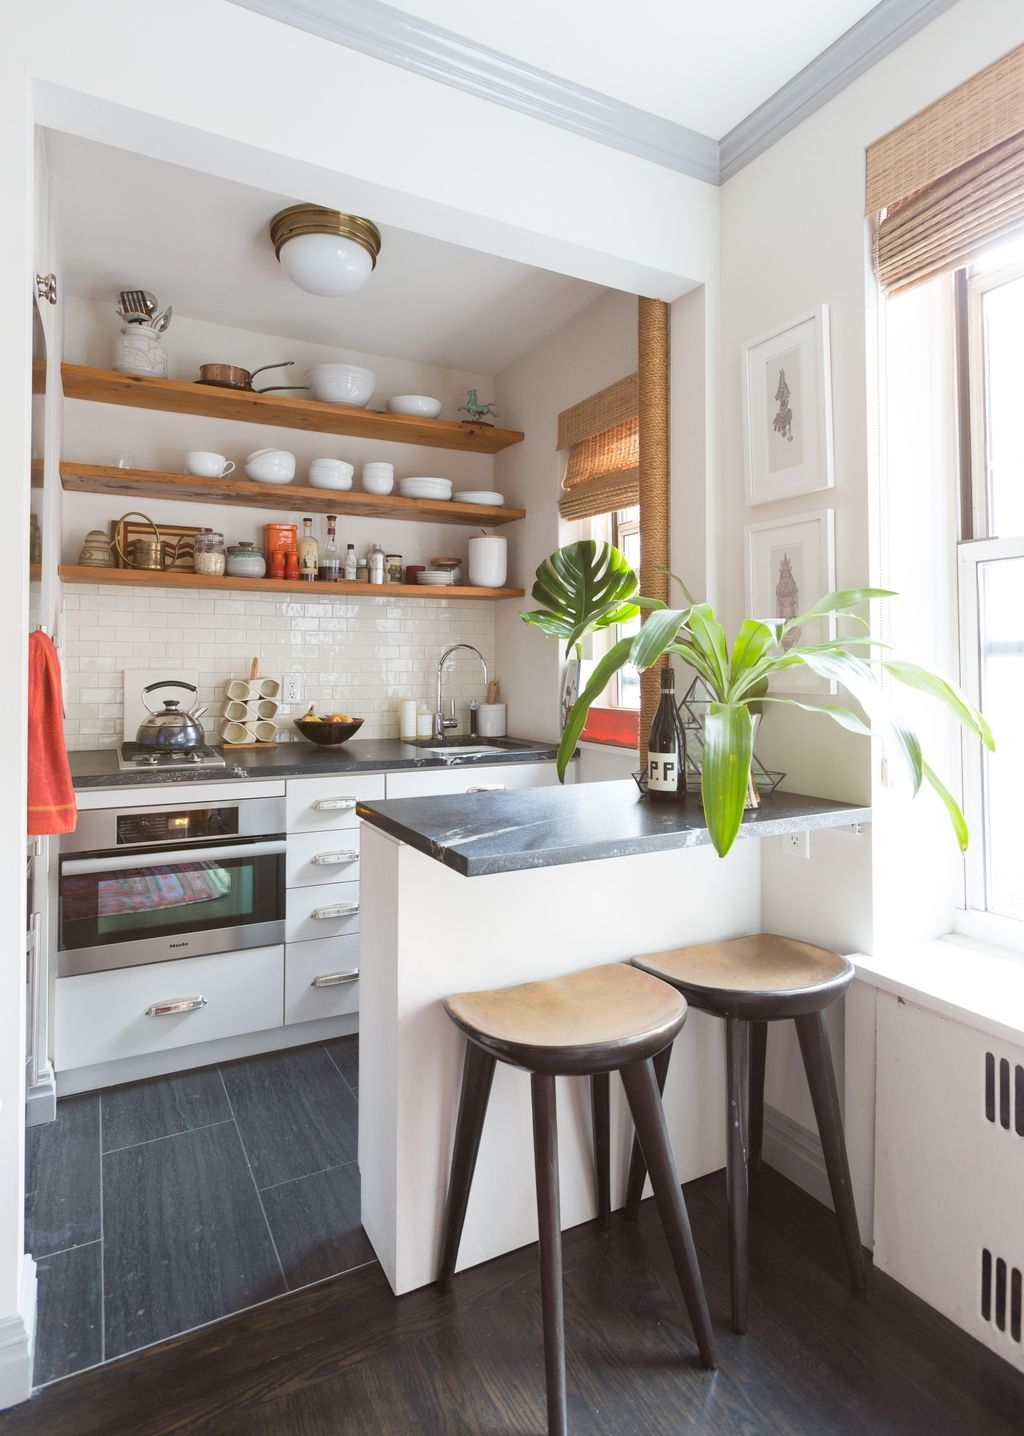 5 small space mistakes you're probably making - and how to ... on Small Kitchen Ideas  id=25437